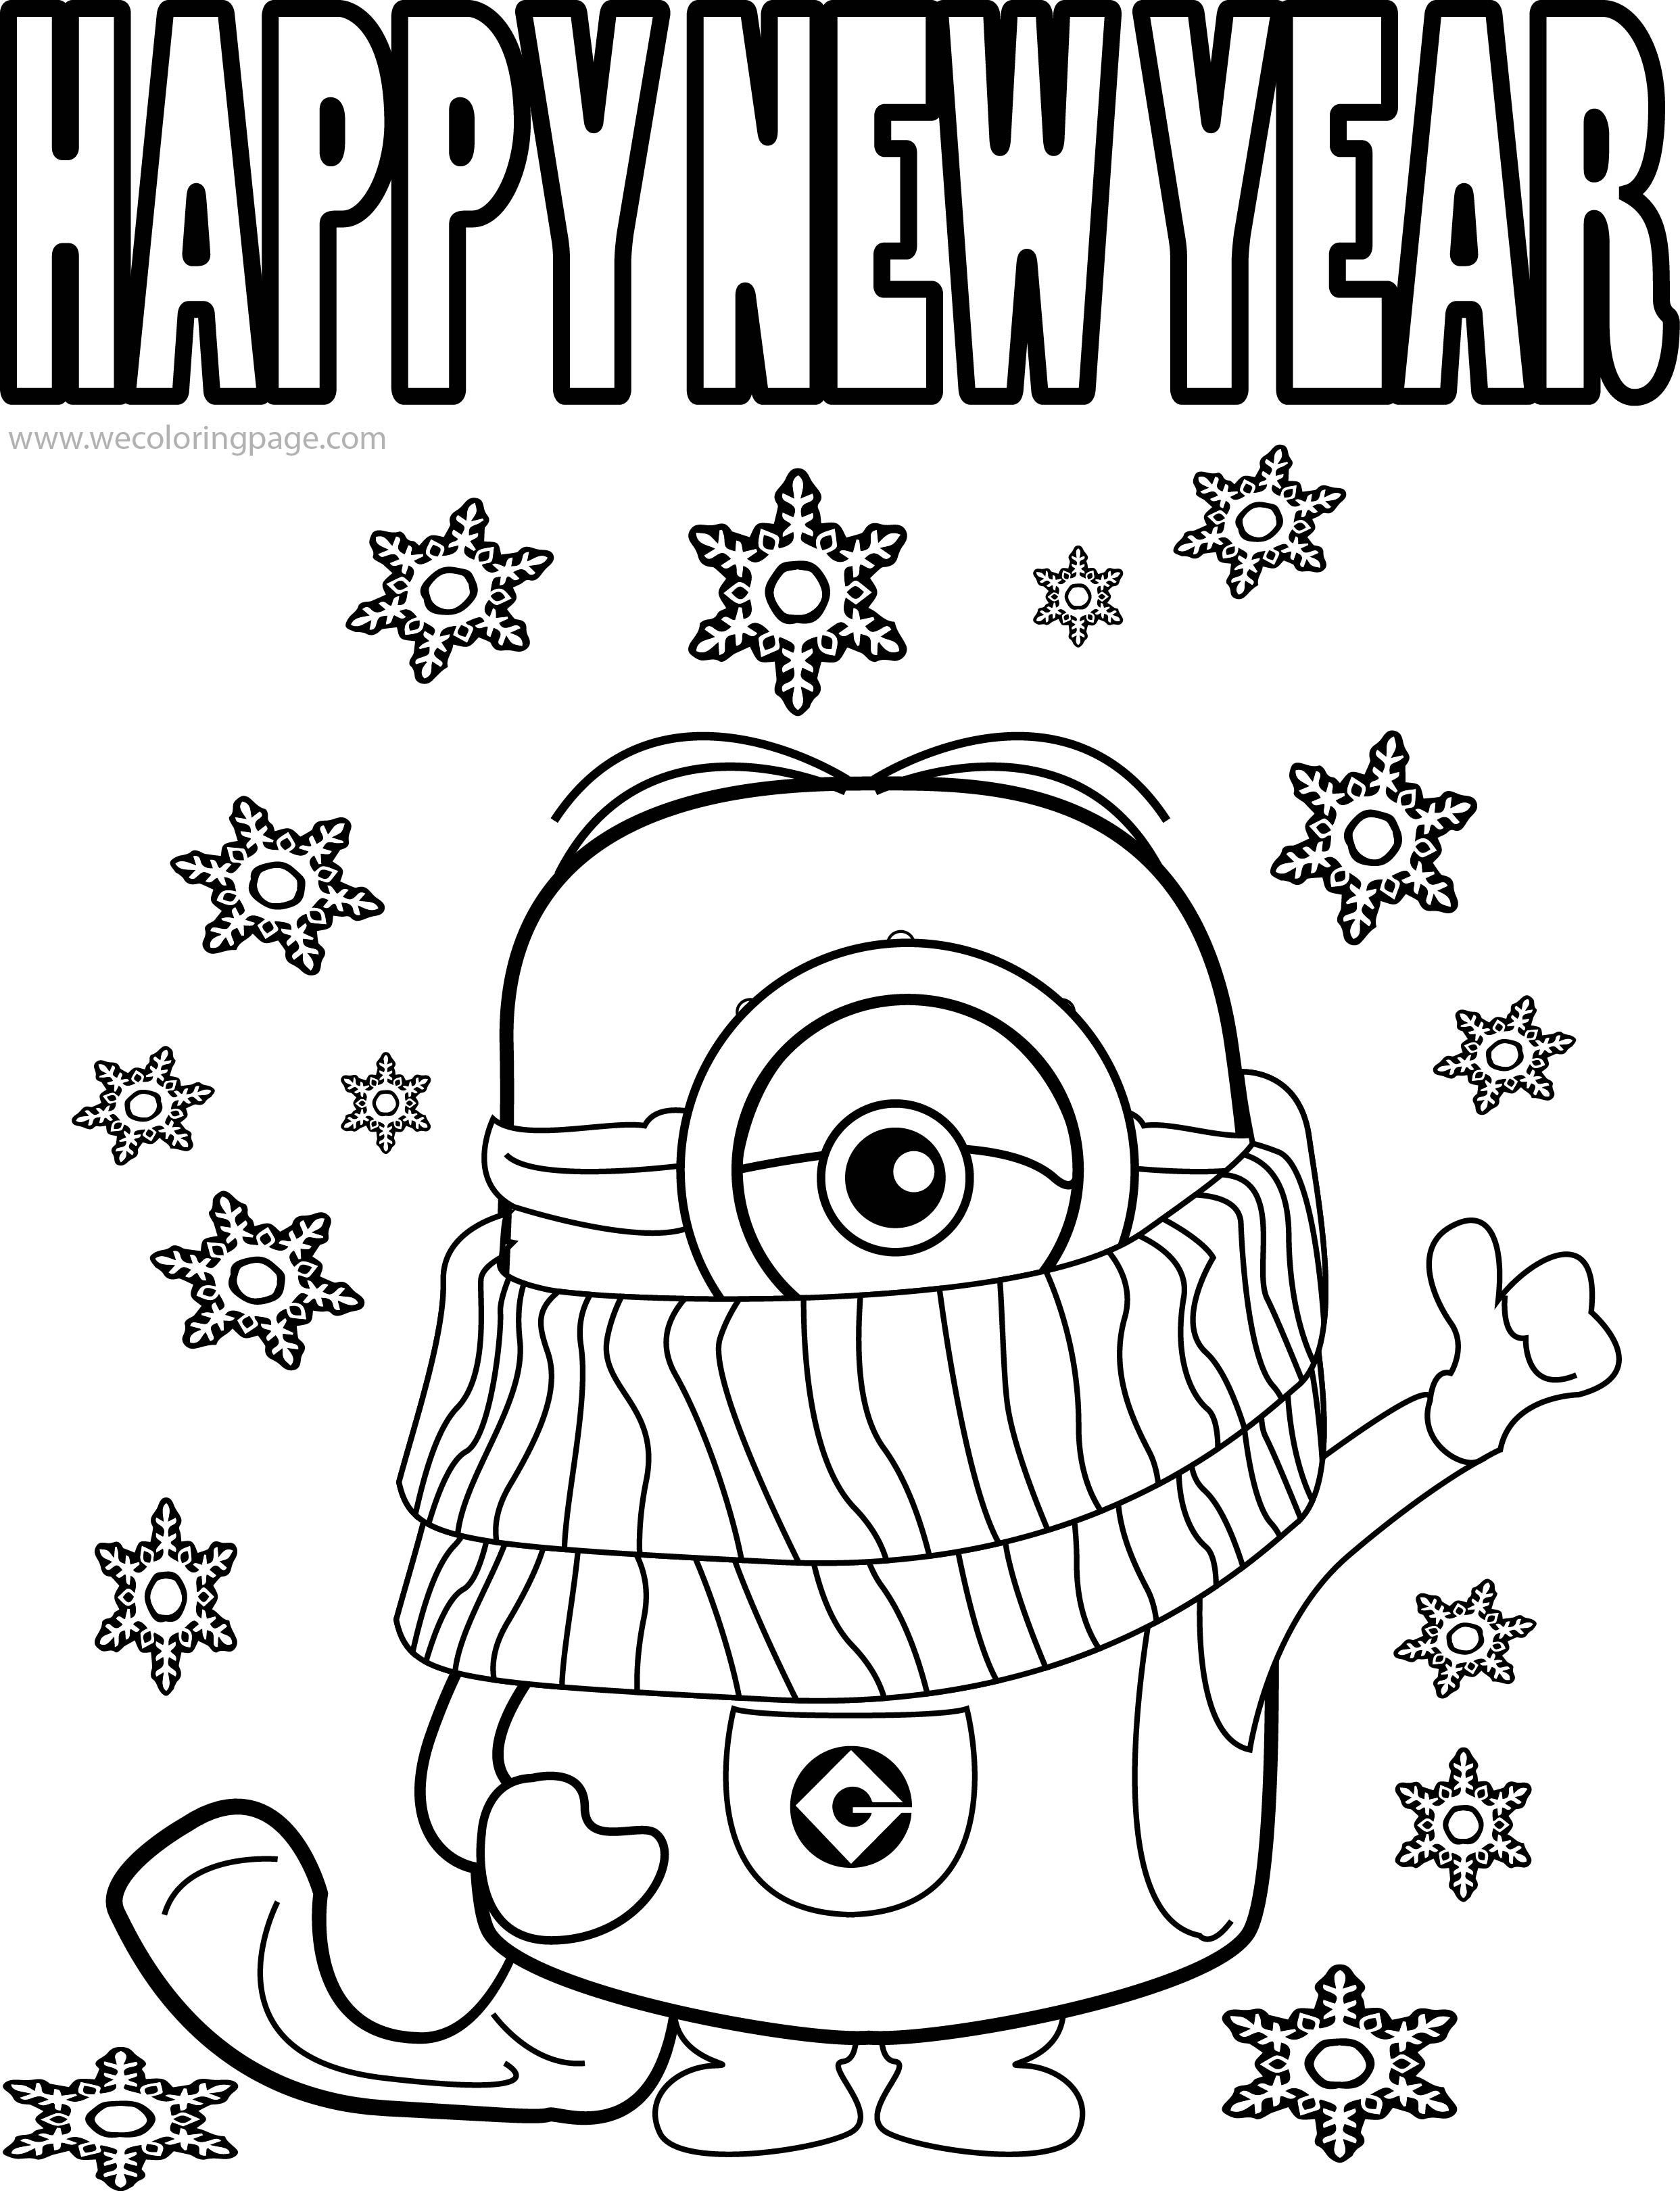 Free Printable Happy New Year Coloring Pages Printable For